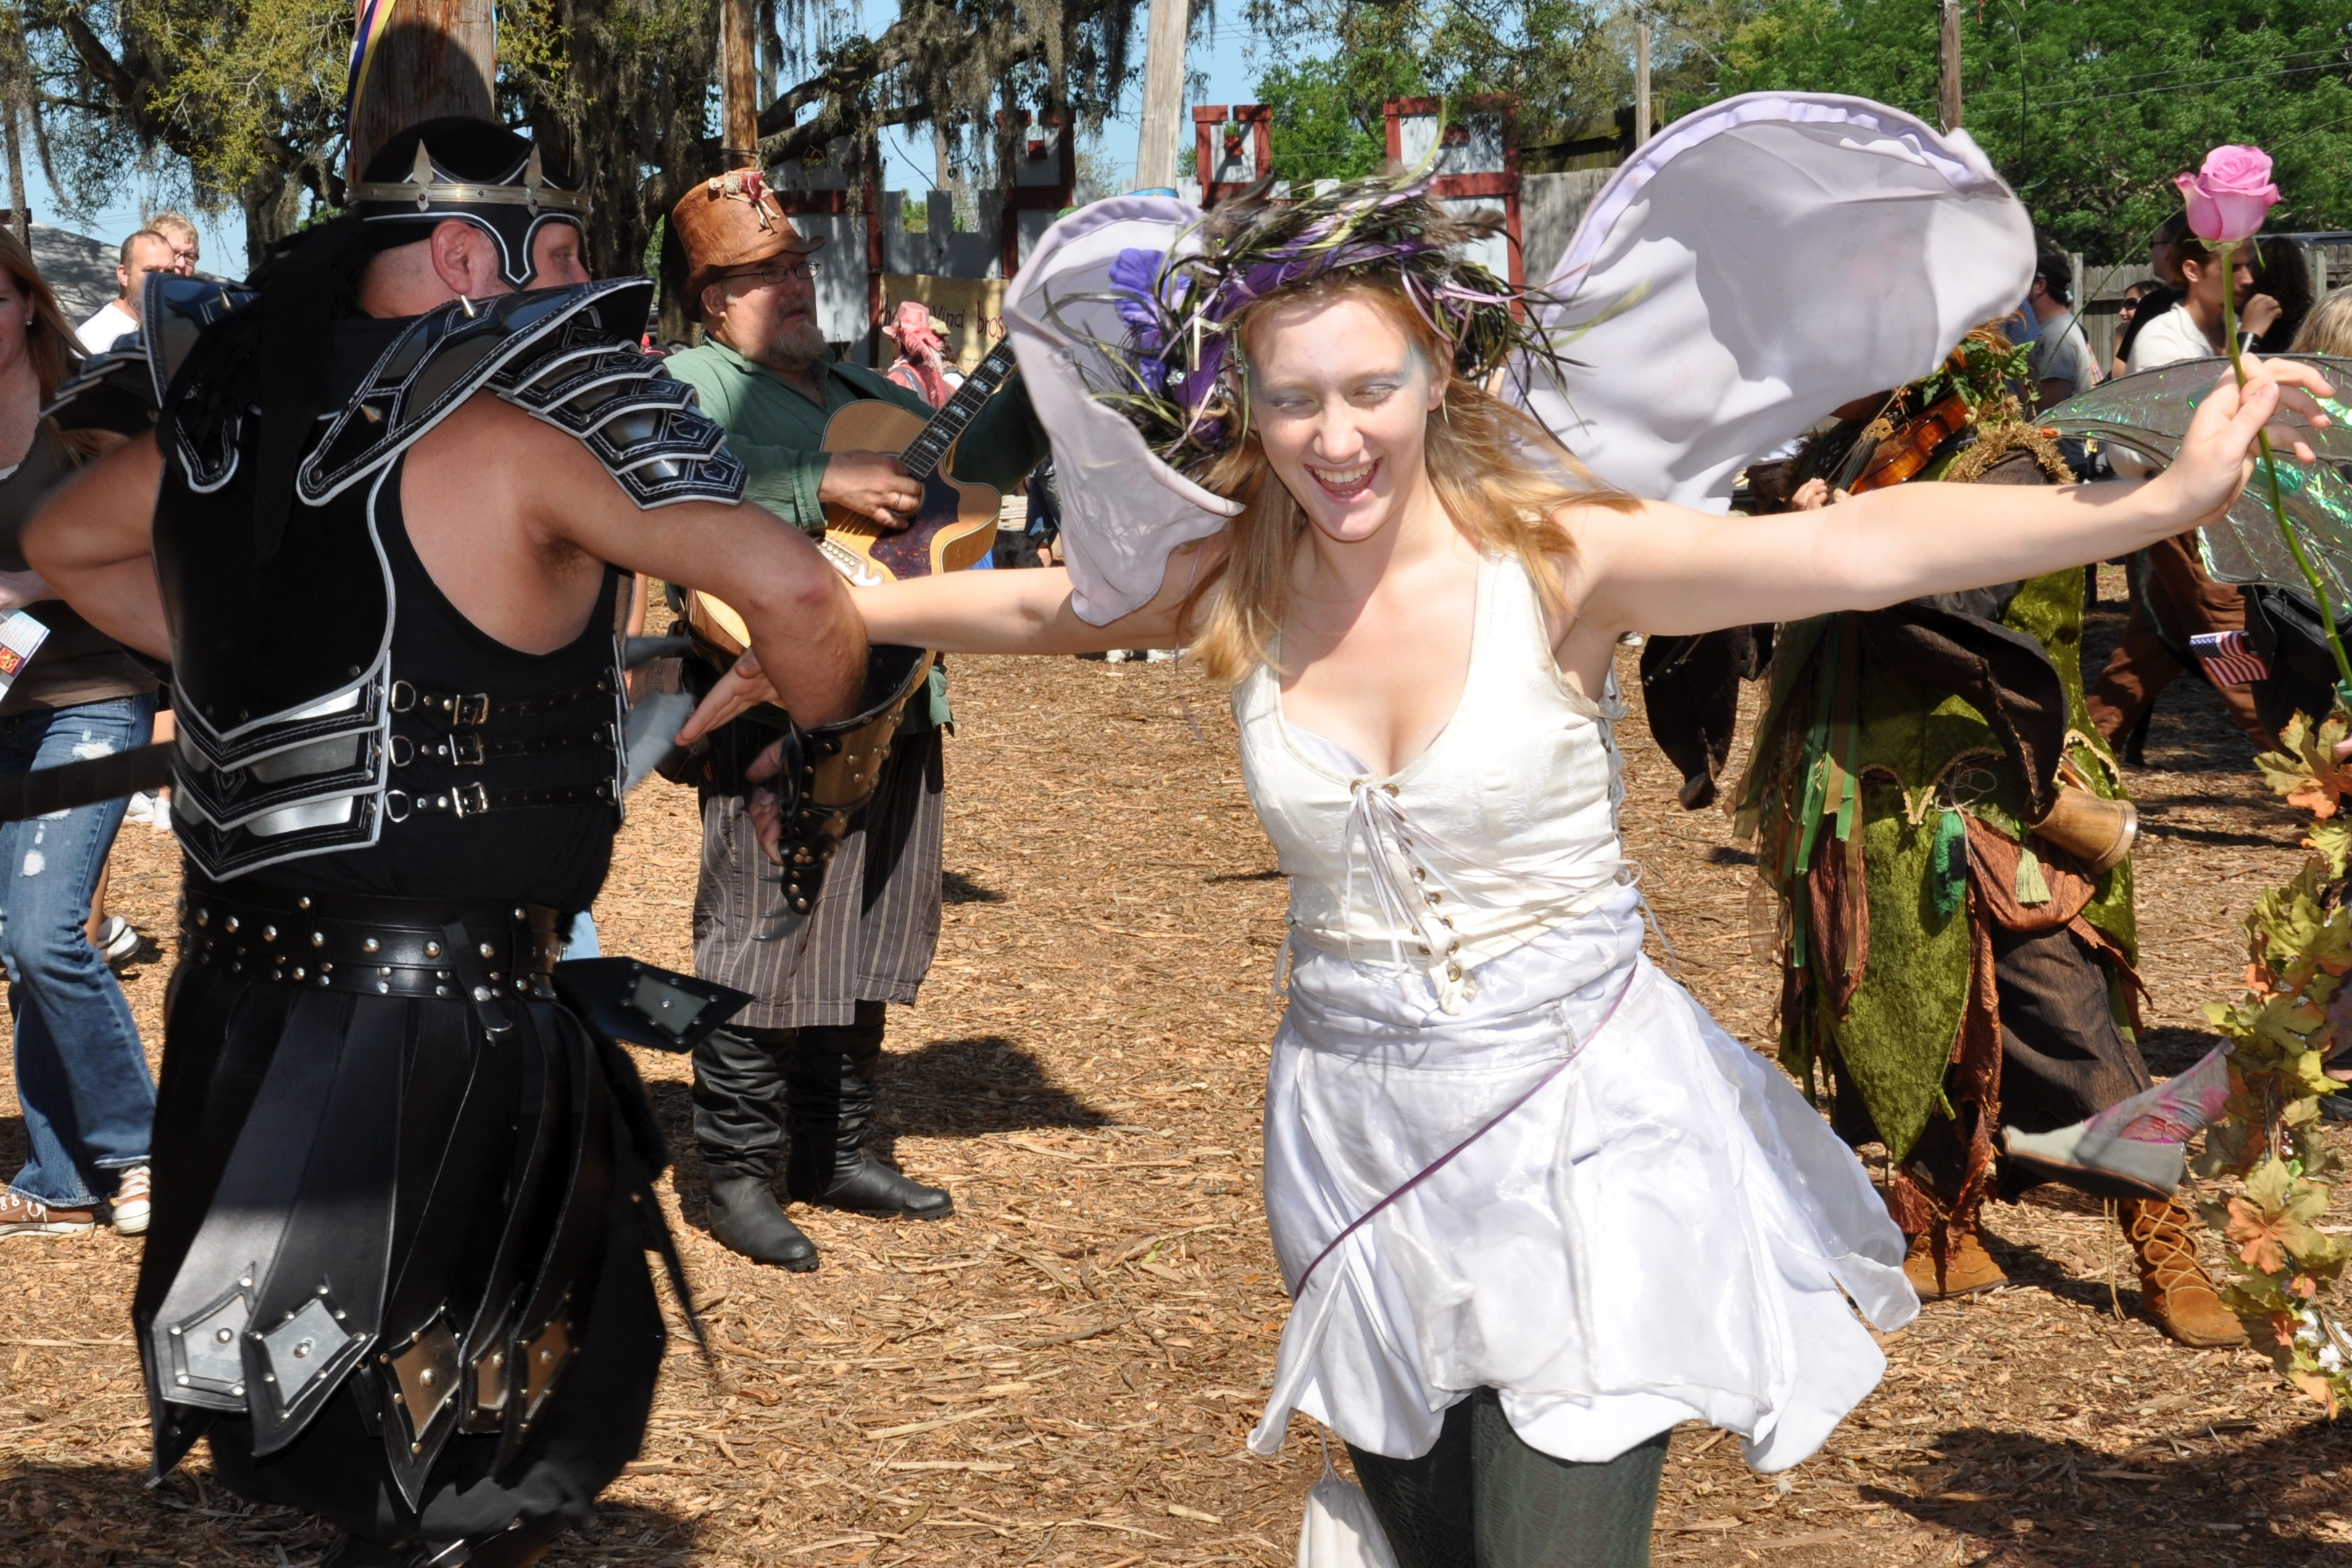 The Bay Area Renaissance Festival. Take a time-travel adventure into the 16th century at the annual Bay Area Renaissance Festival! Join our Queen in a jubilee! Journey back in time as more than merchants contribute to the atmosphere of this charming 16th century village.